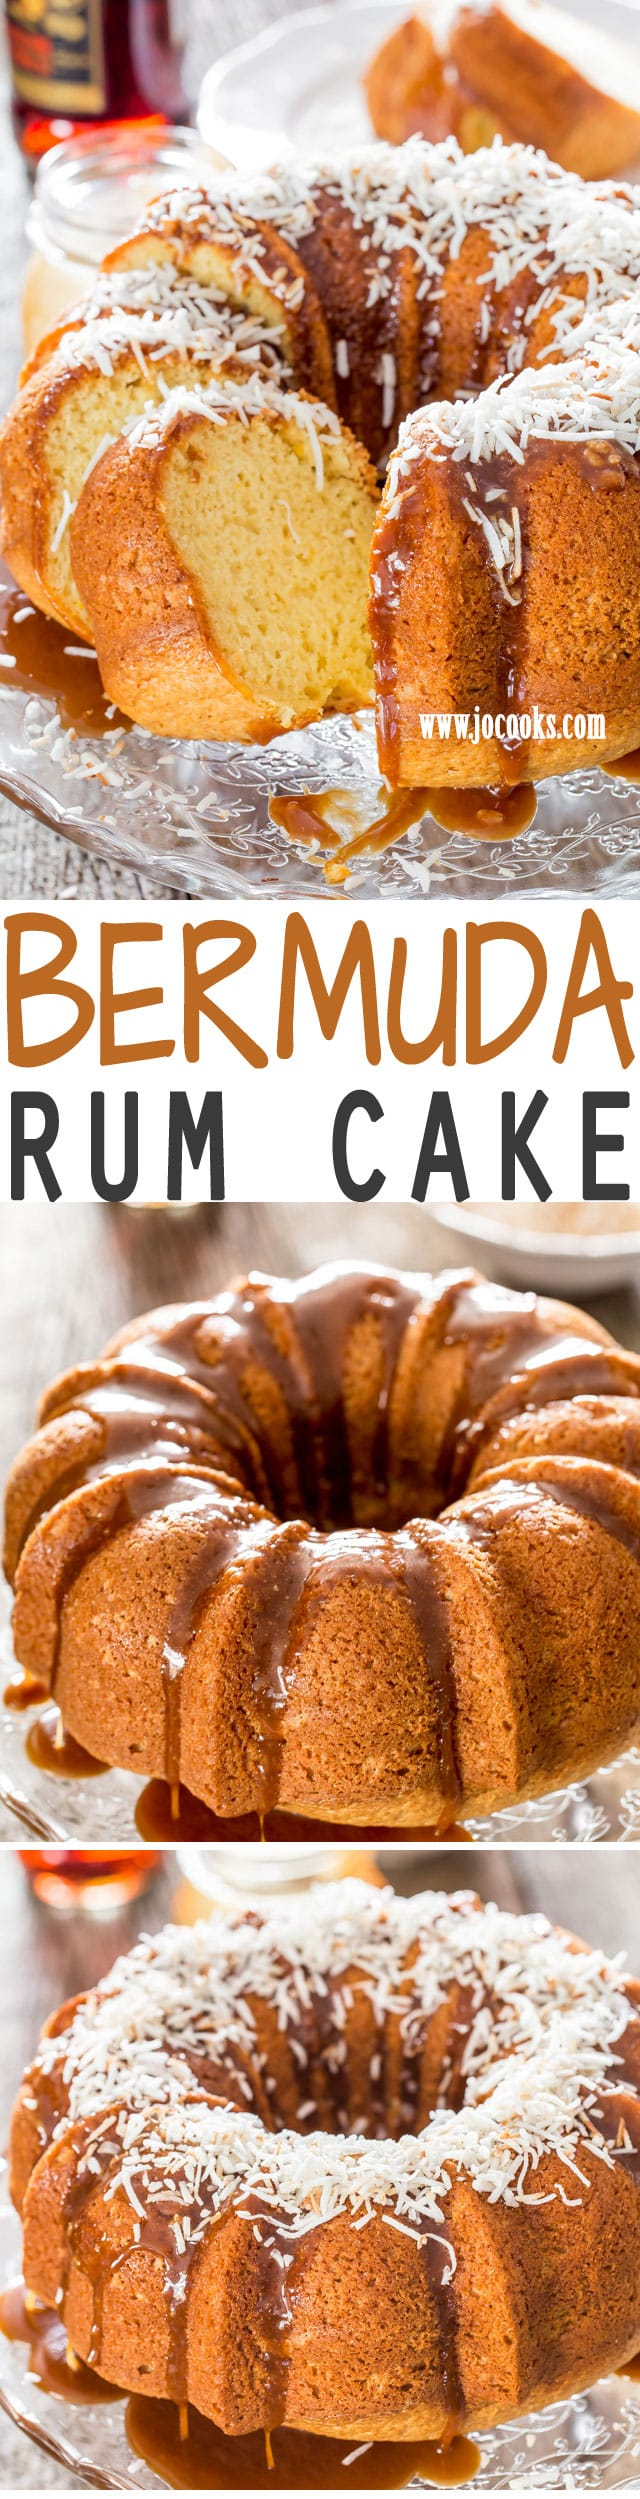 This Bermuda Rum Cake is the ultimate when it comes to boozy cakes and it does not come from a box mix. The best homemade rum cake recipe. This cake is definitely boozy, sweet and citrusy and it's glazed with a delicious butter and dark rum caramel sauce.